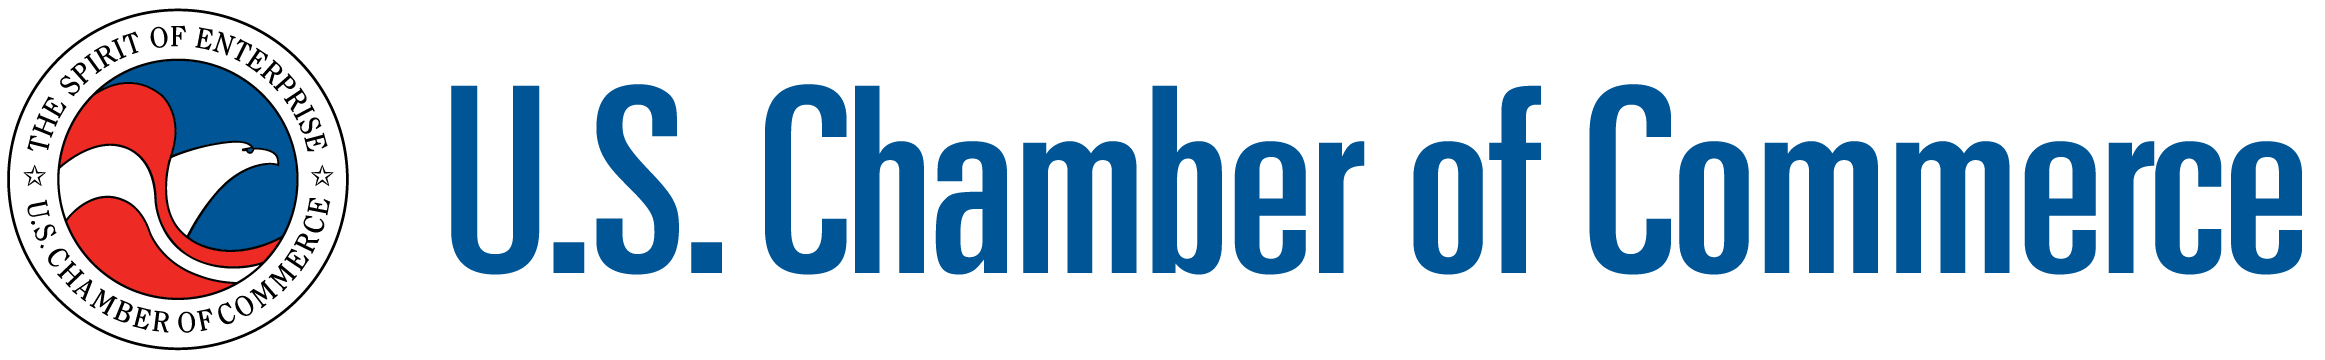 U.S. Chamber of Commerce Member